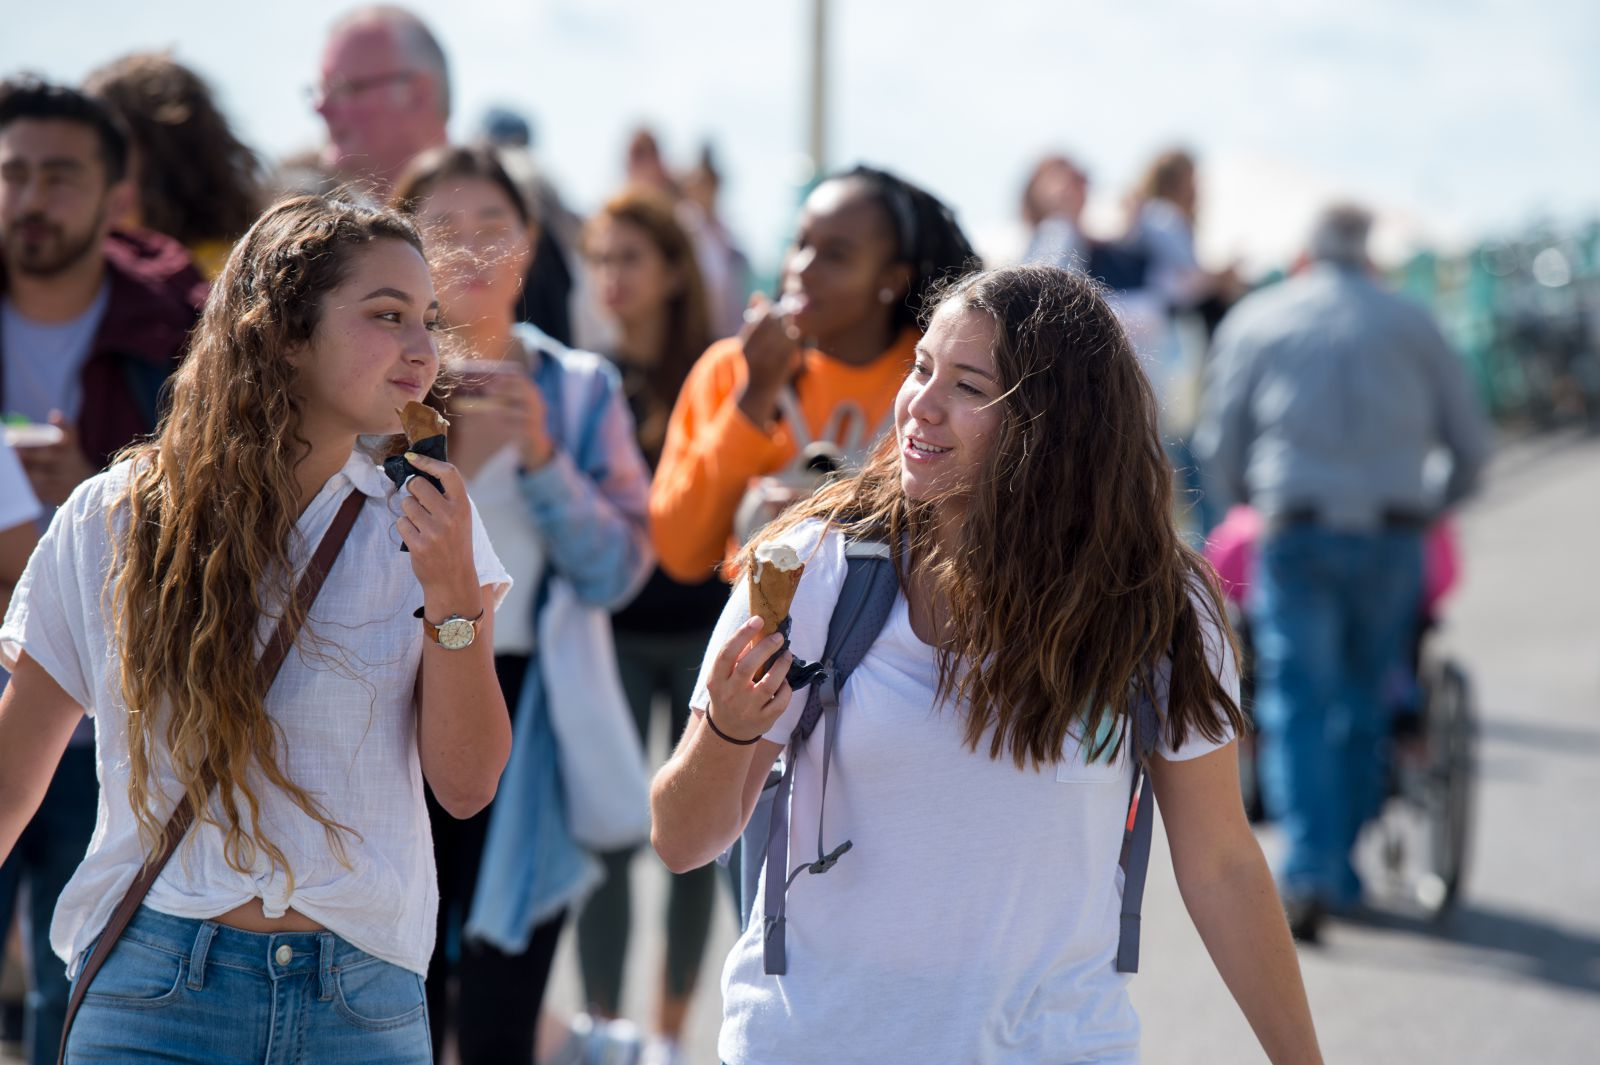 Students walking along Brighton seafront with ice creams